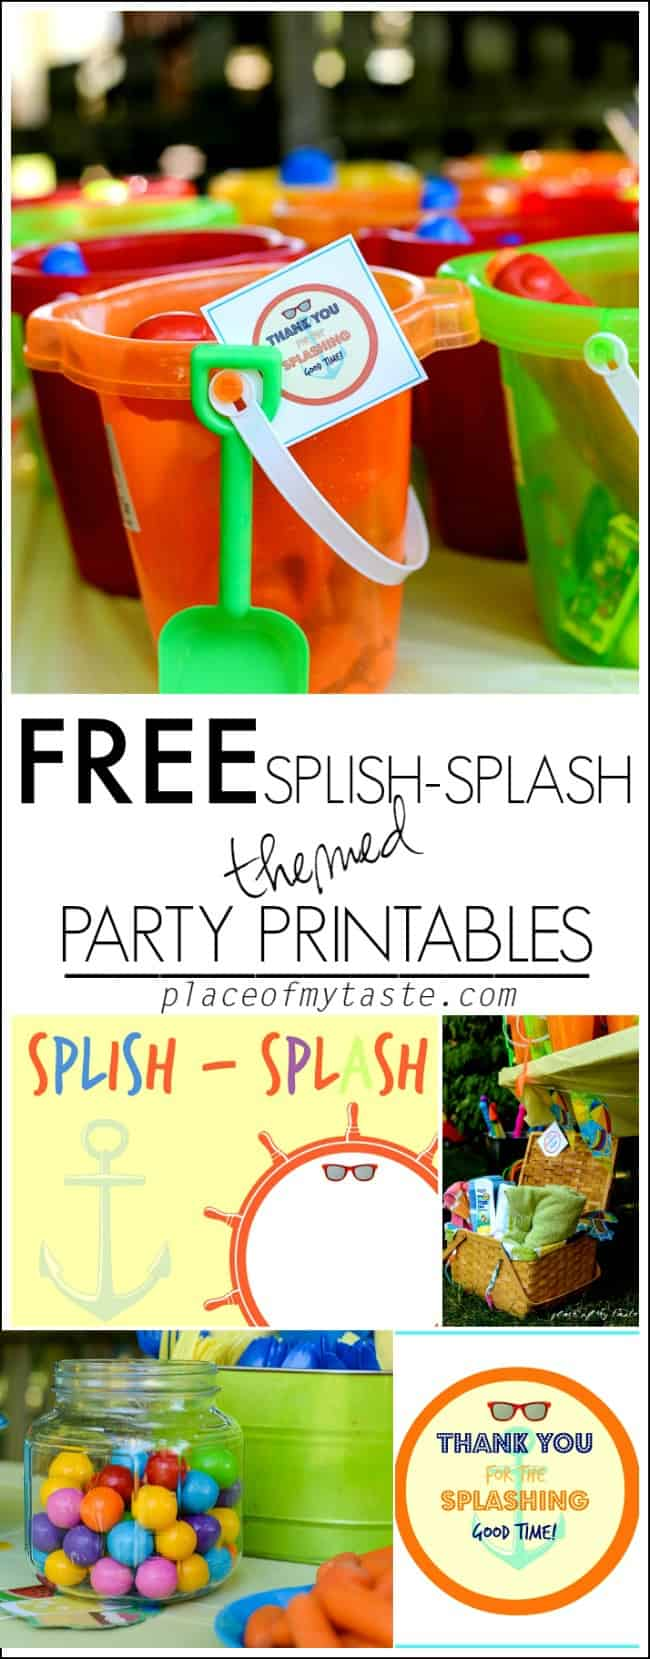 FREE SPLISH SPLASH THEMED PARTY PRINTABLES